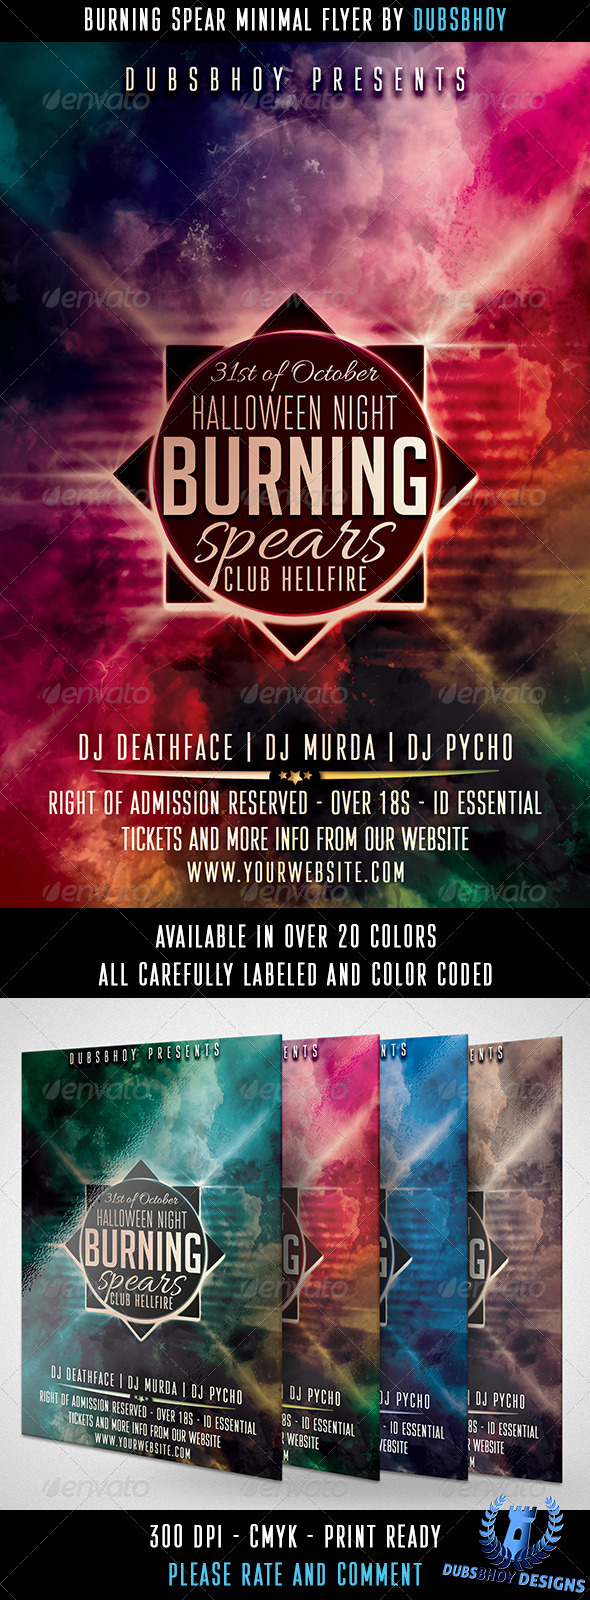 GraphicRiver Burning Spear Minimal Flyer 5901561